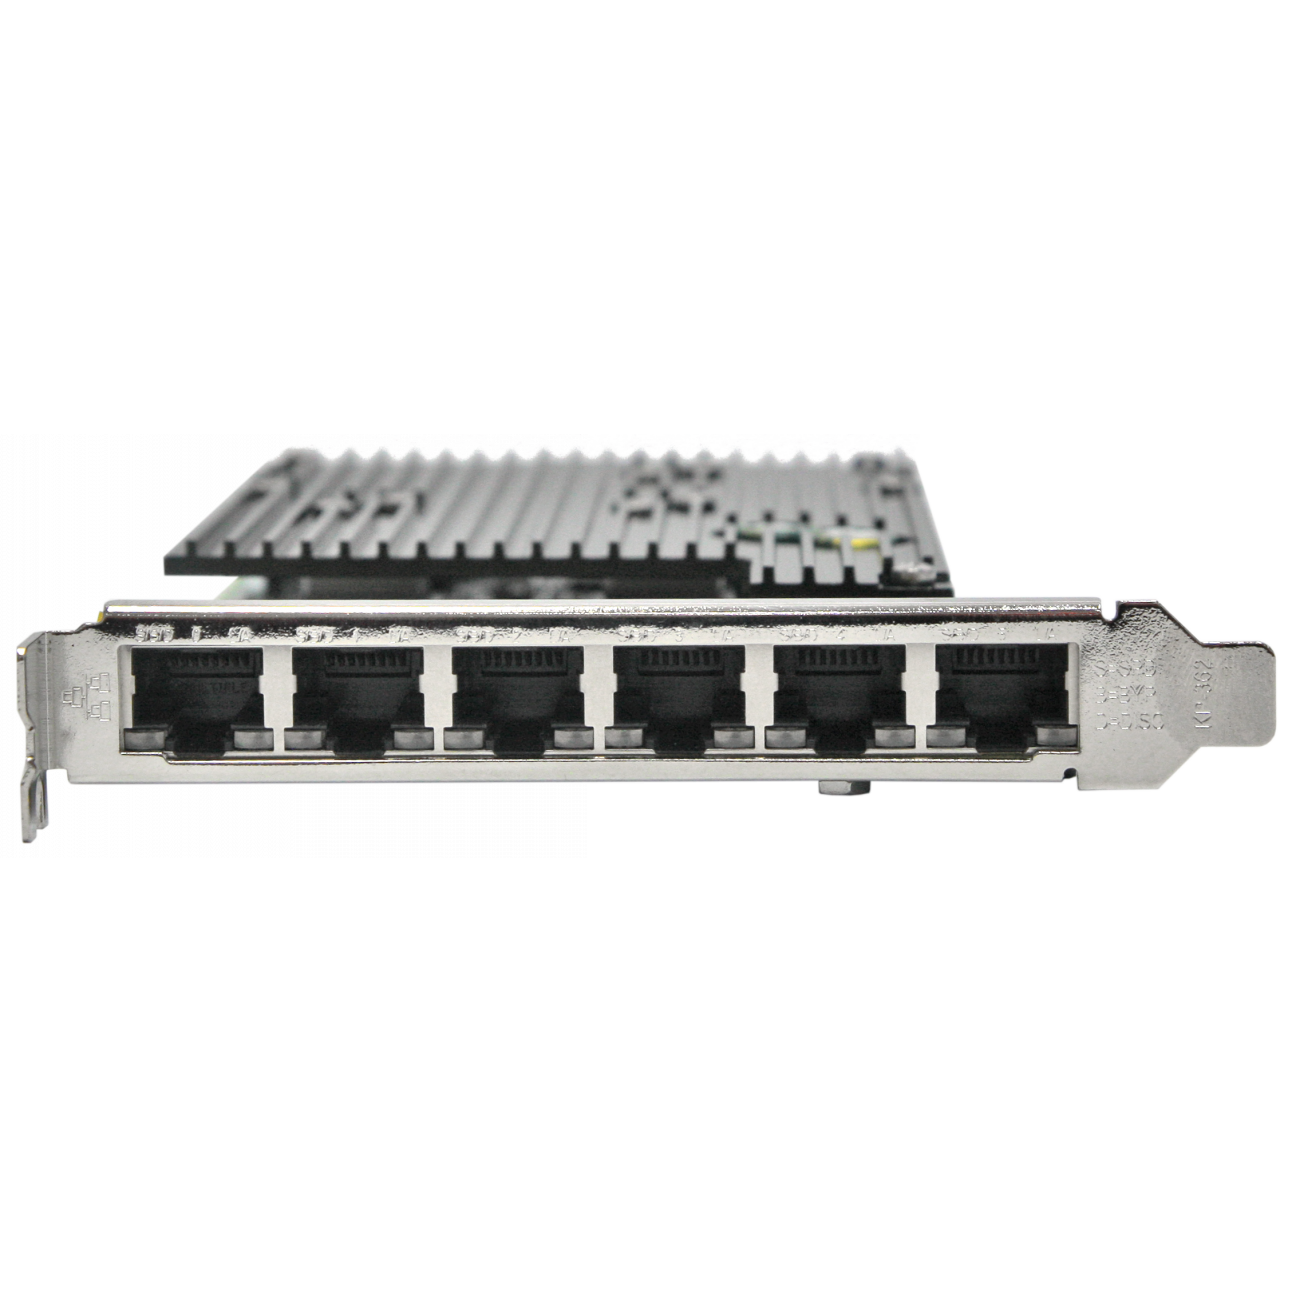 Сетевая карта 6 портов 10/100/1000Base-T Bypass (RJ45, Intel i350AM2 и Intel i350AM4), Silicom PE2G6BPi35-SD